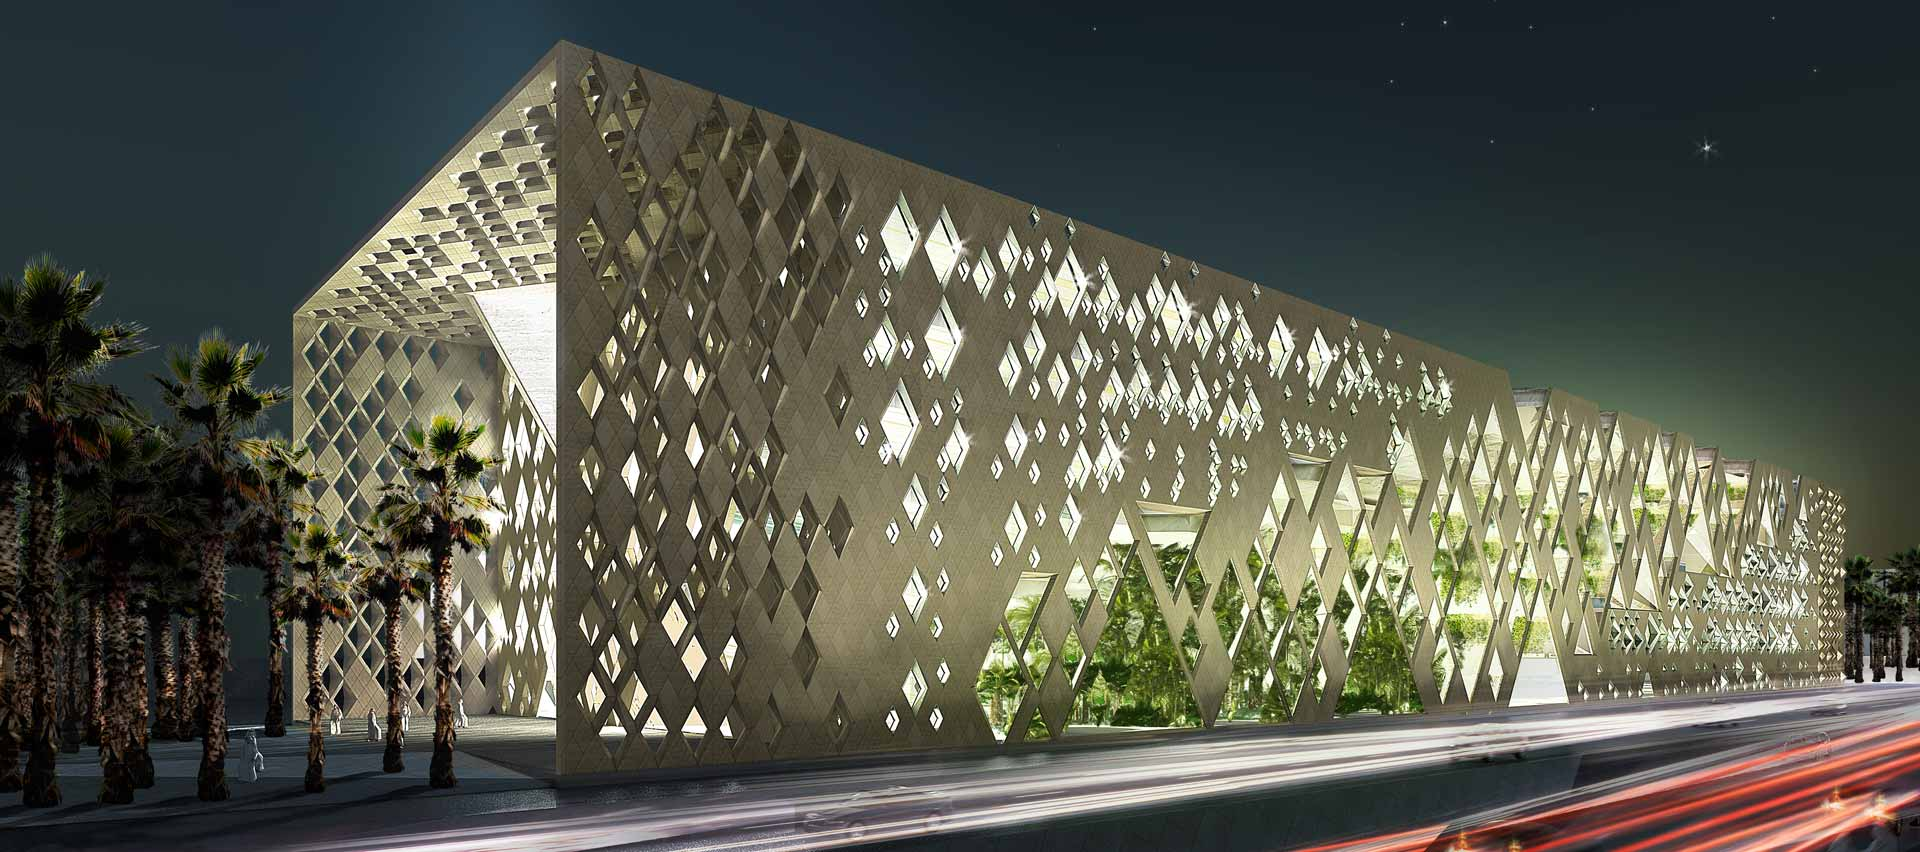 Institute of Diplomatic Studies in Riyadh, Saudi Arabia by